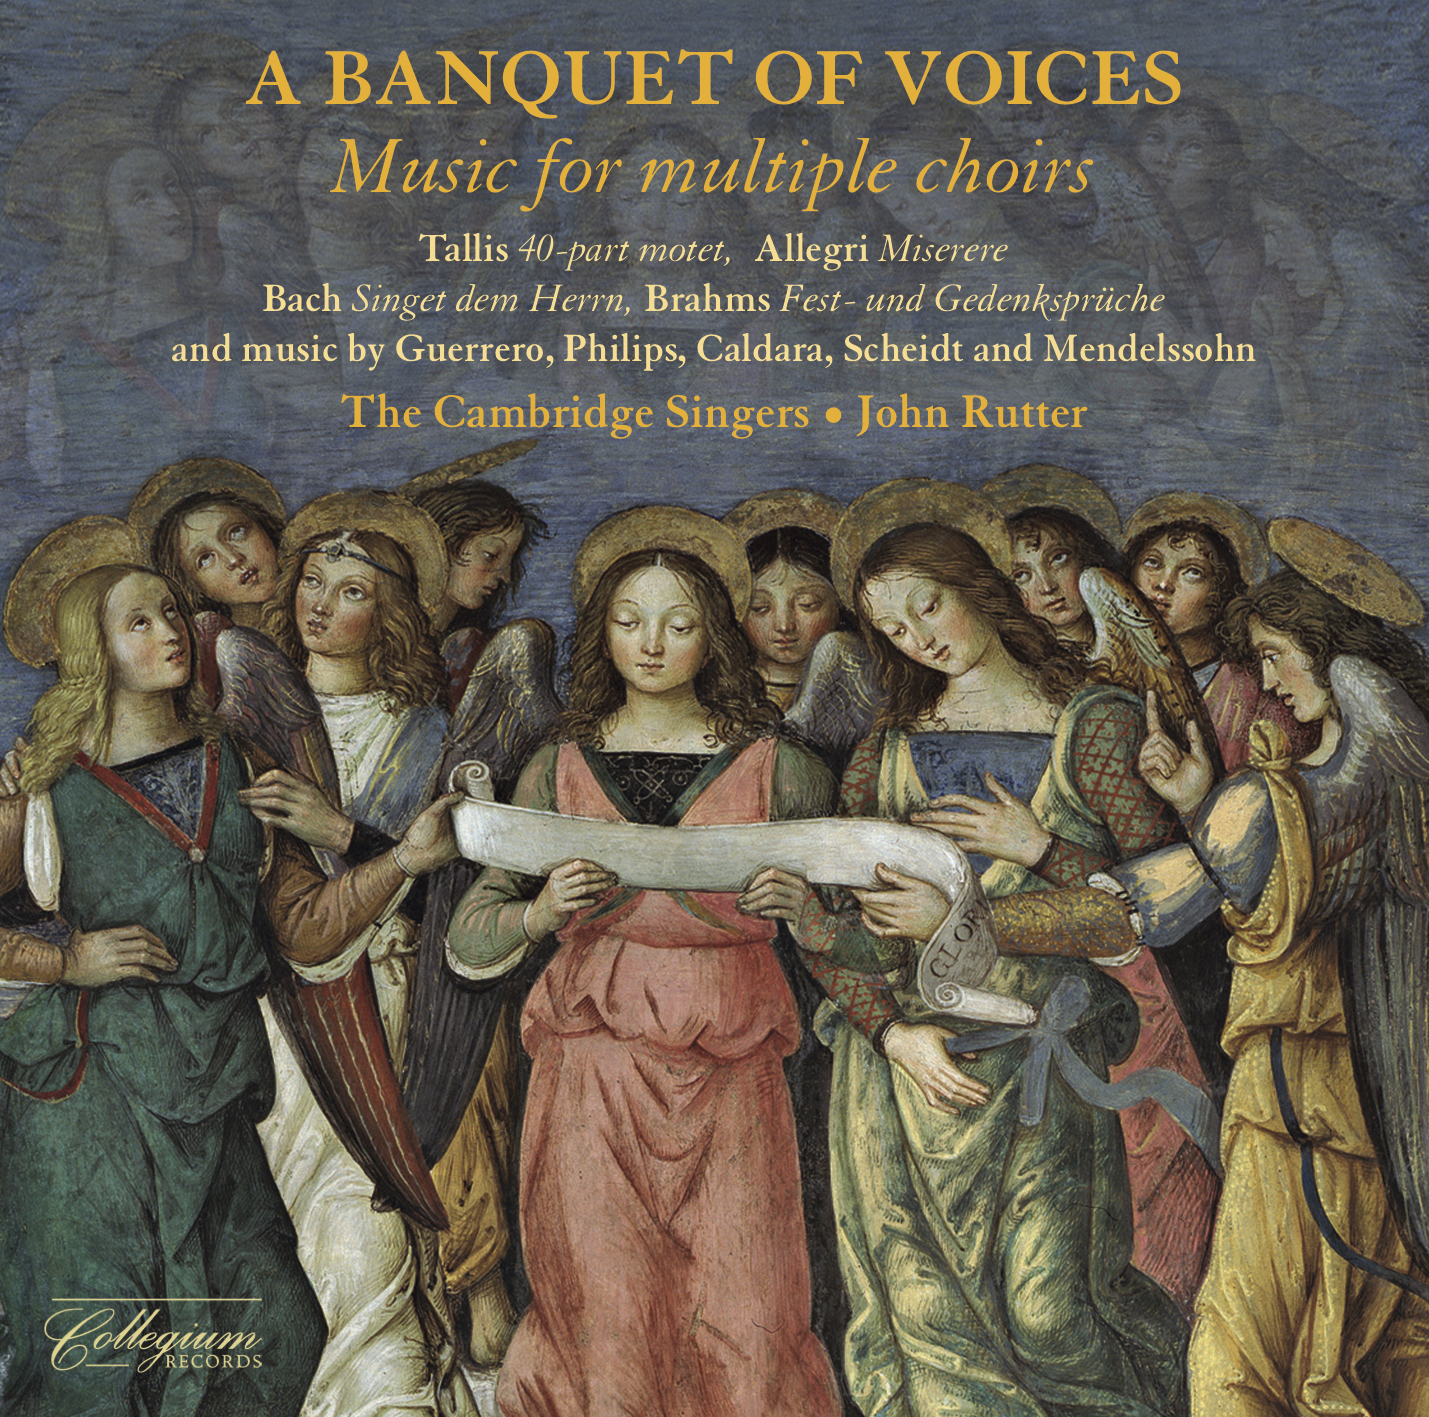 A Banquet of Voices released